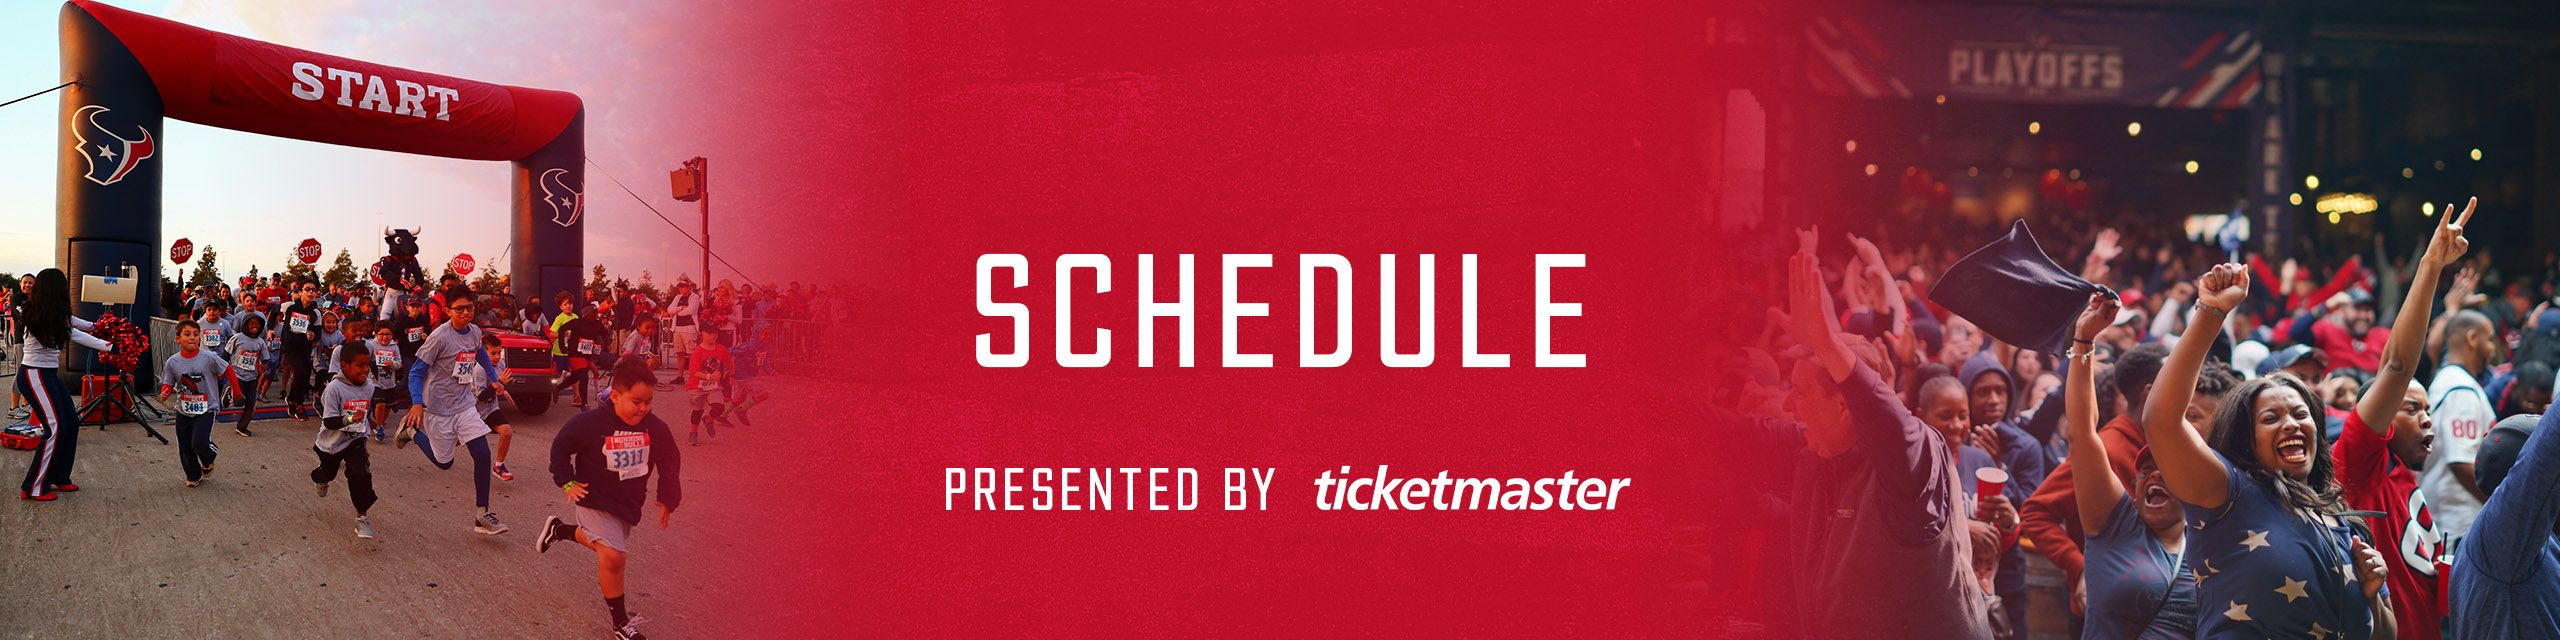 Schedule presented by Ticketmaster